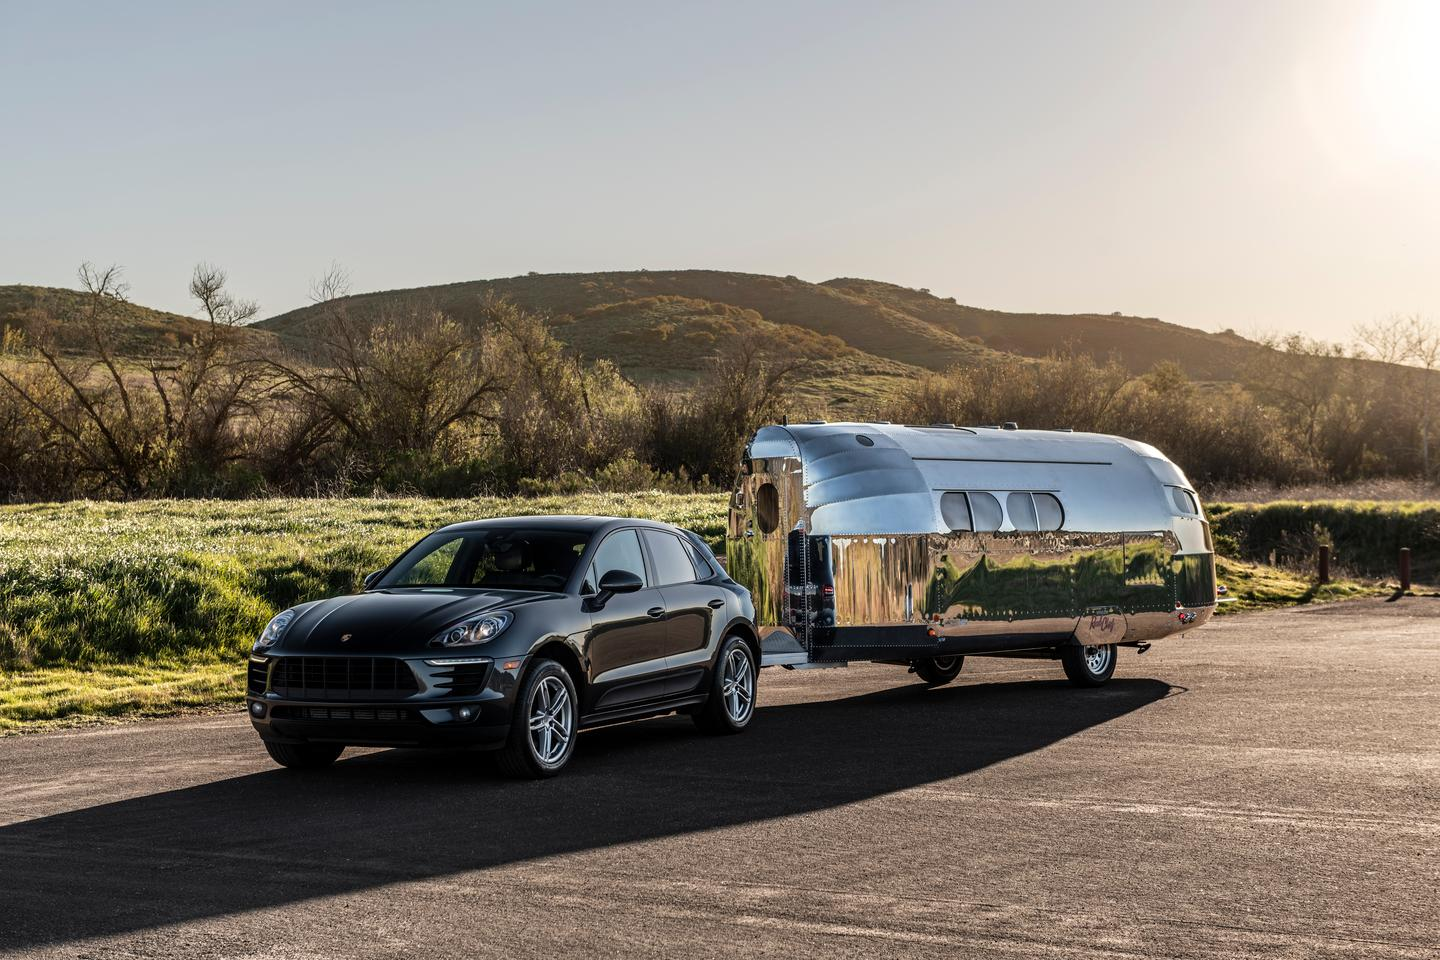 The Road Chief Endless Highways Performance Edition becomes Bowlus' most powerful, high-tech trailer